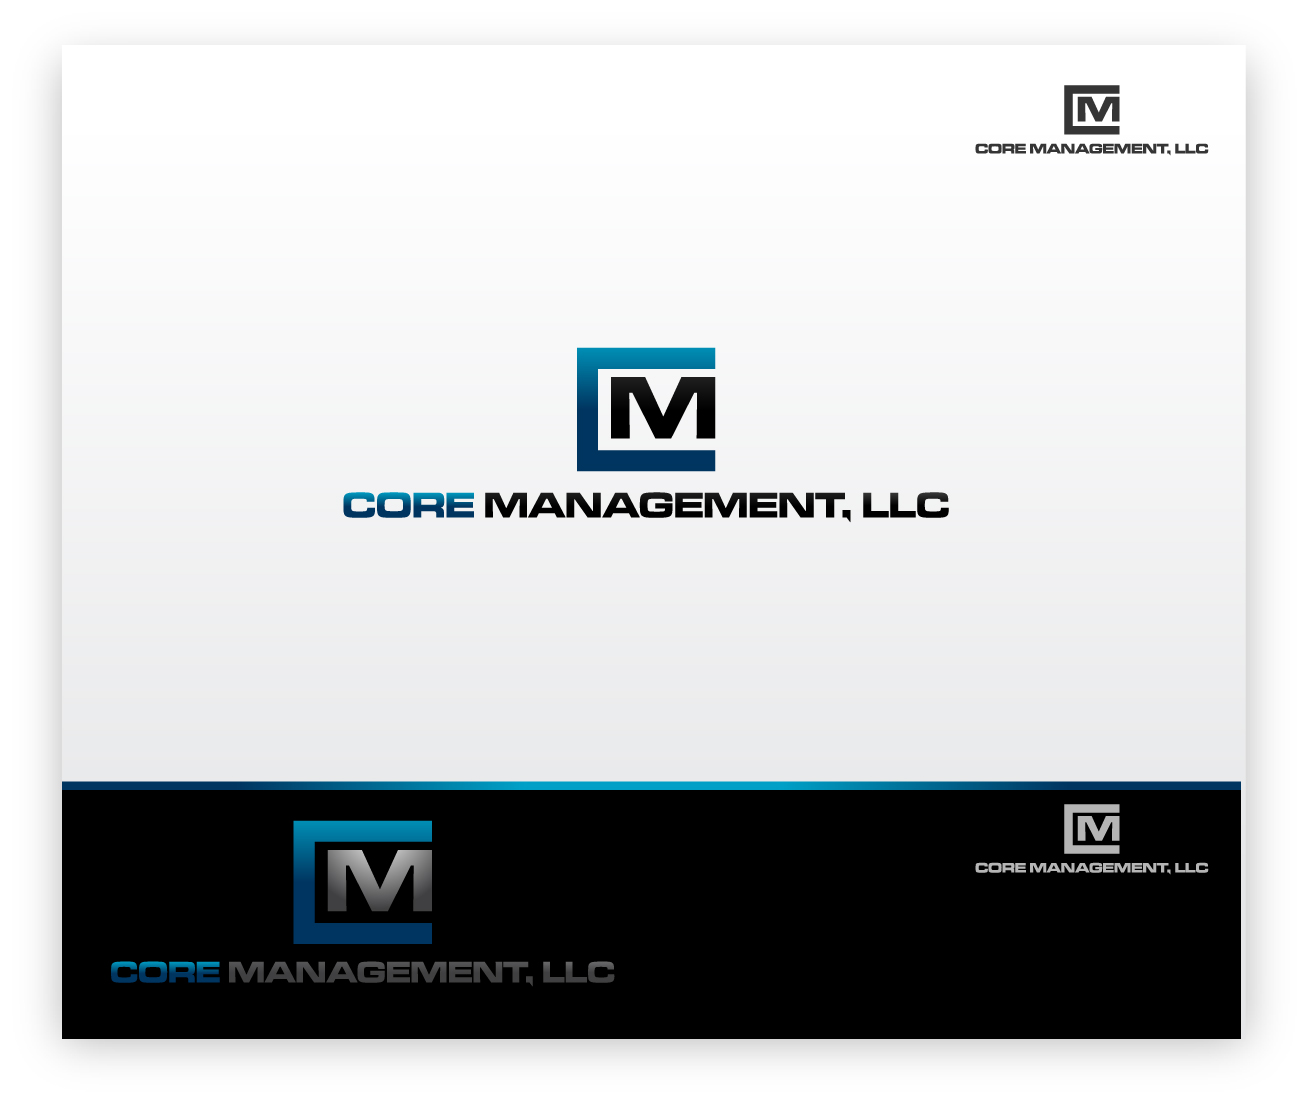 Logo Design by zoiDesign - Entry No. 29 in the Logo Design Contest Creative Logo Design for CORE Management, LLC.